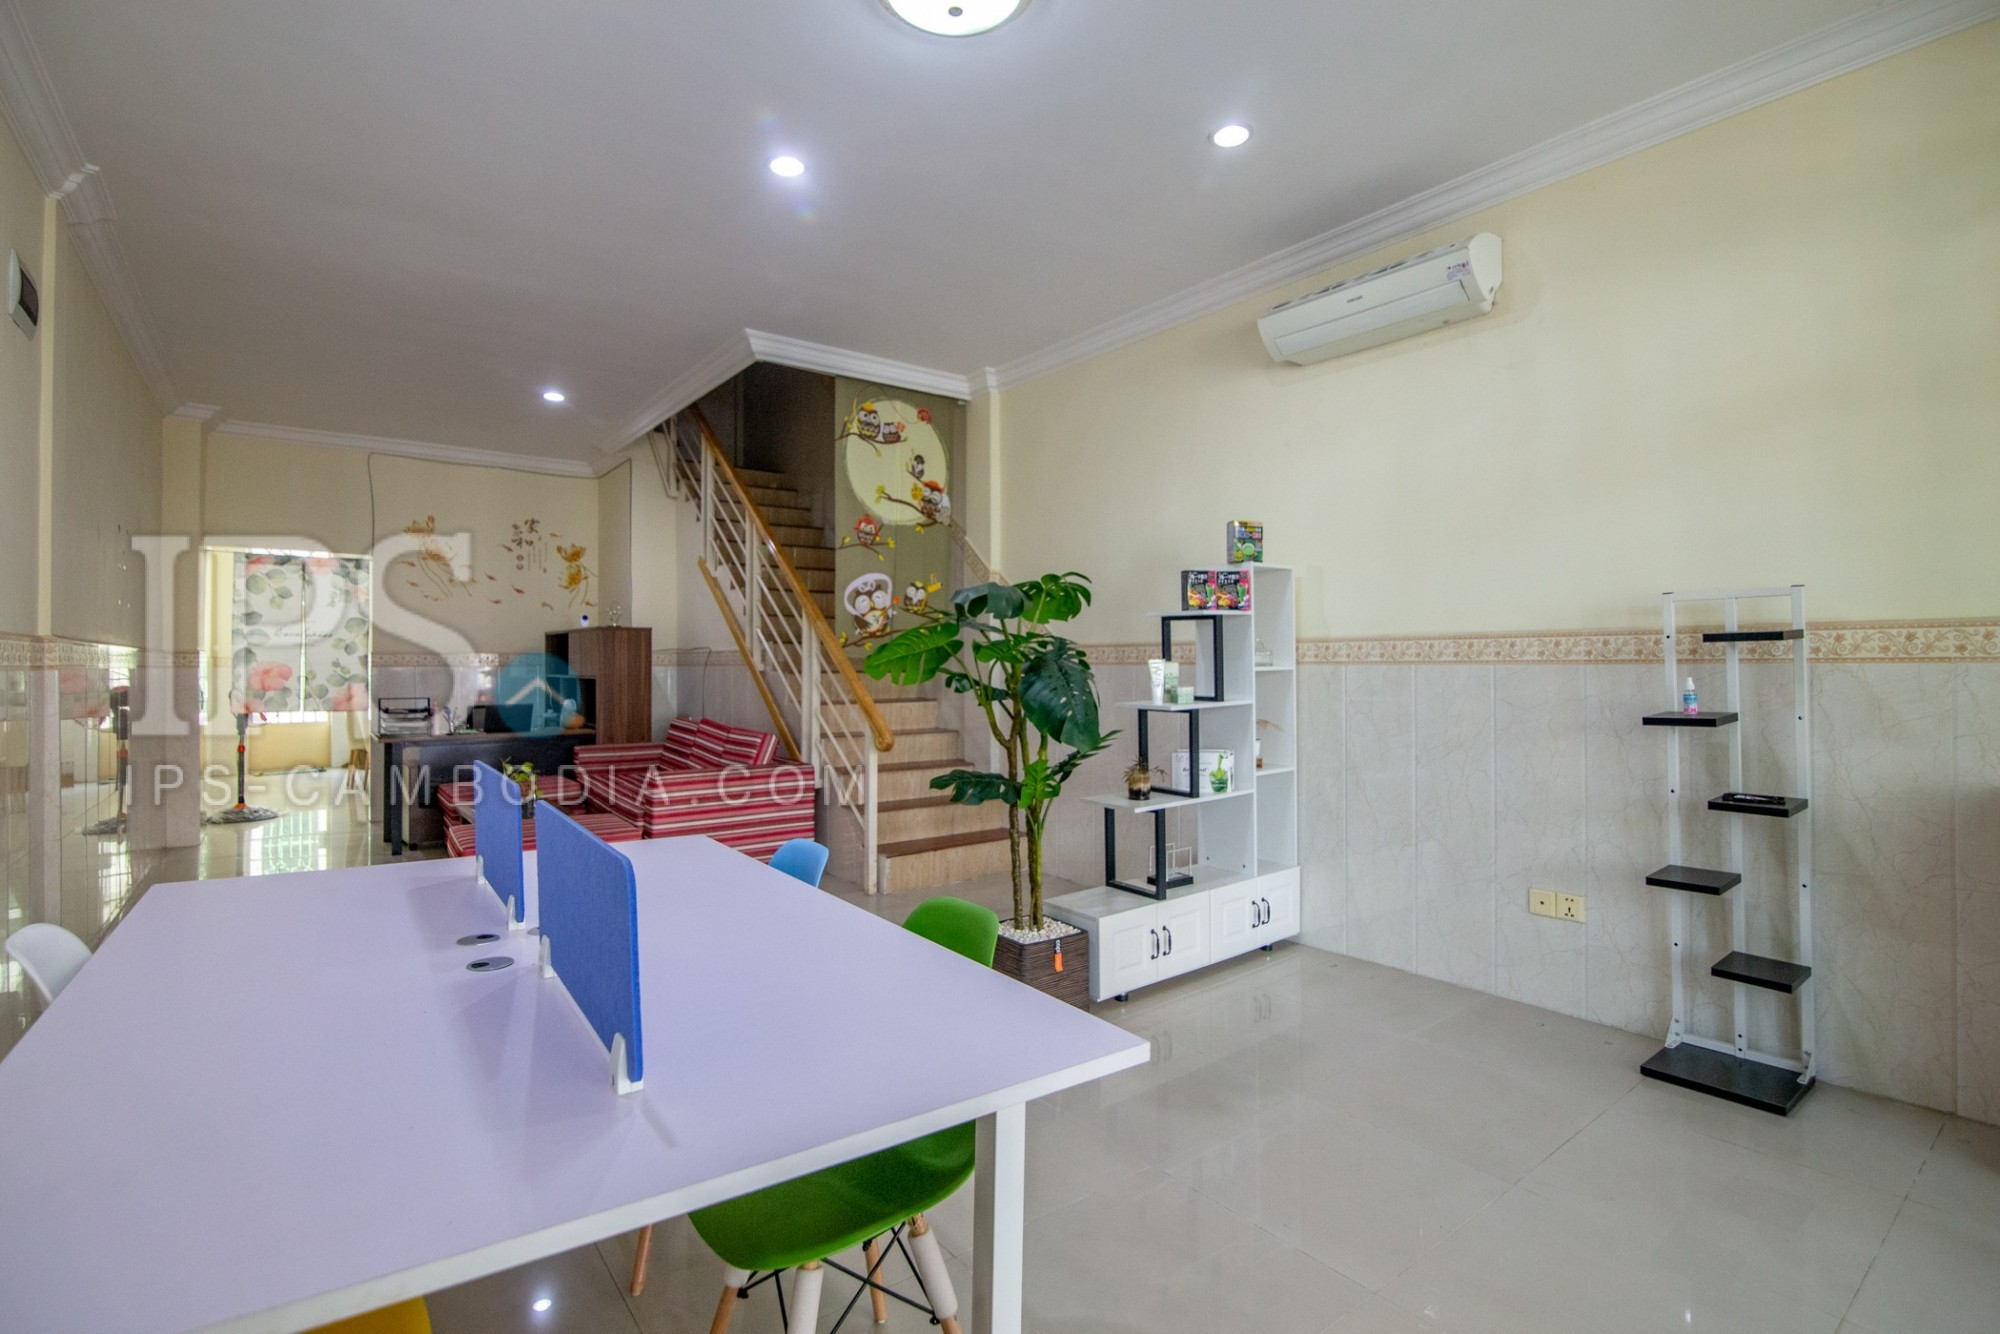 5 Bedroom Twin Villa For Rent  Stueng Meanchey, Khan Meanchey, Phnom Penh